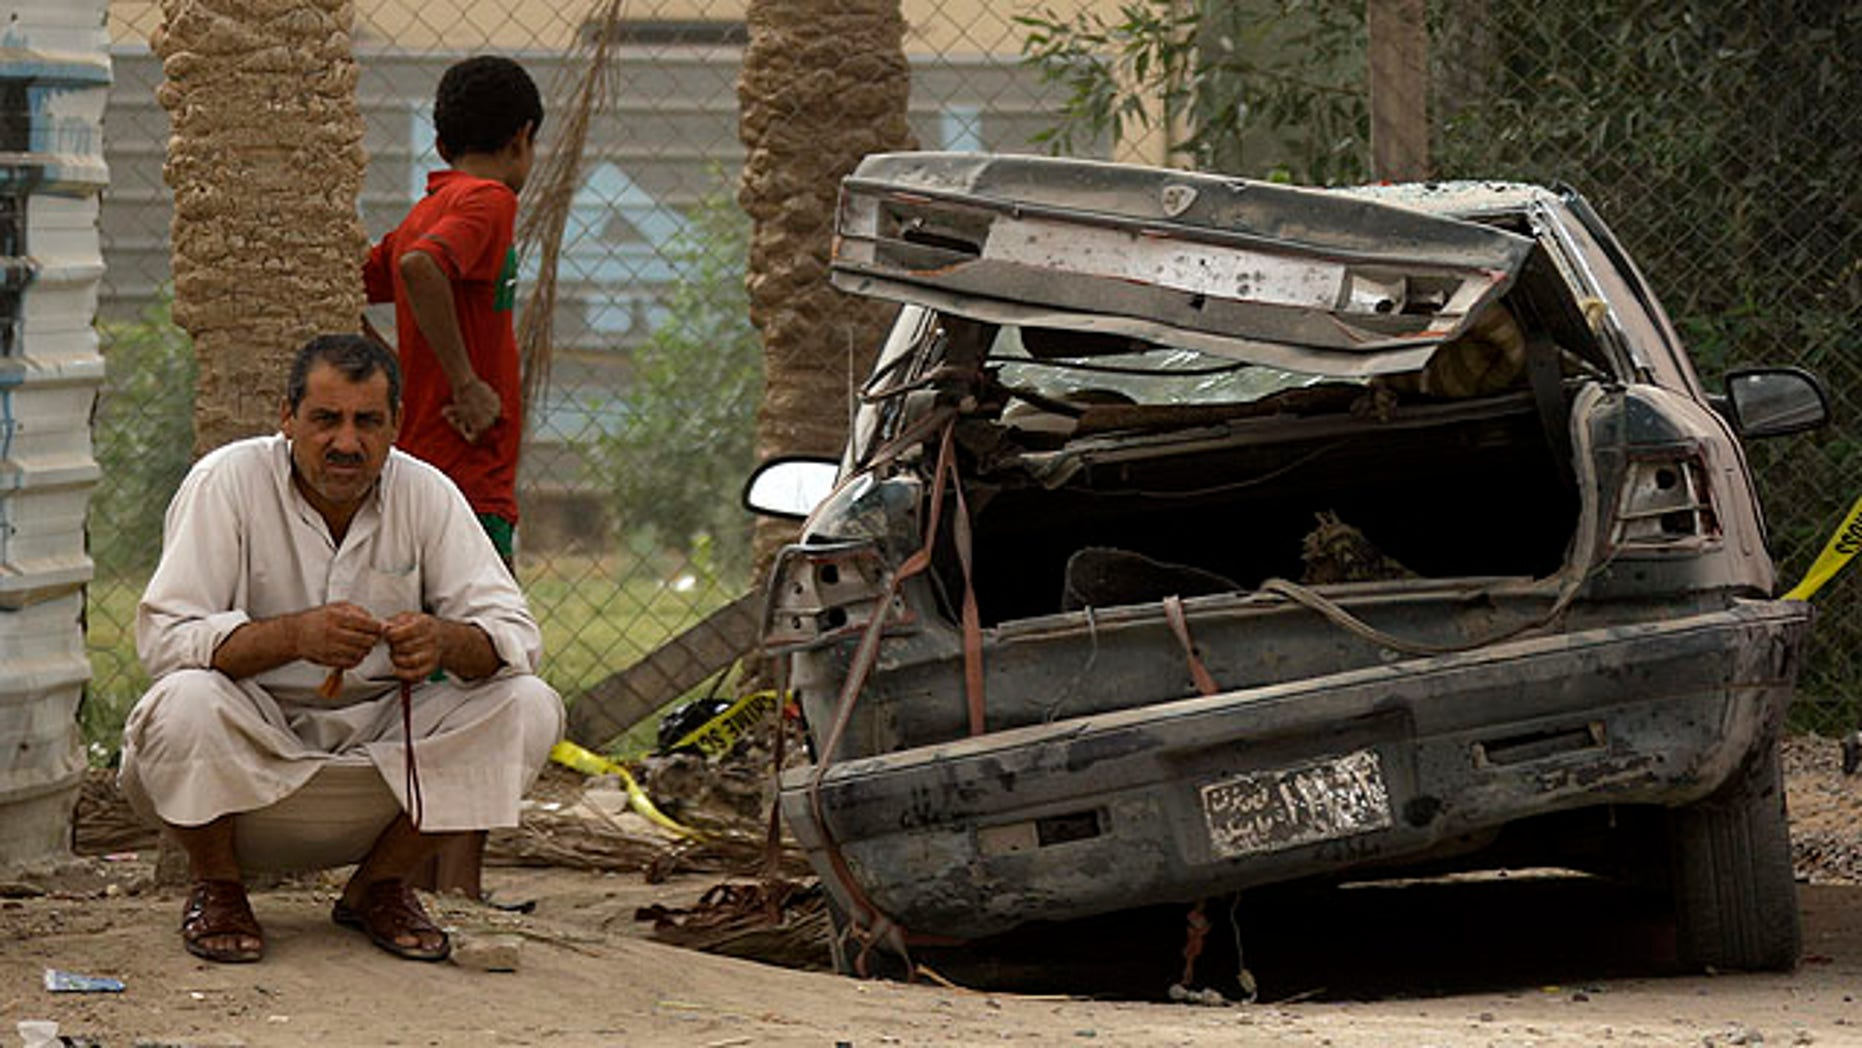 Oct. 1: A man sits next to his damaged car at the scene of a car bomb attack in a town just outside Hillah, about 60 miles south of Baghdad, Iraq.